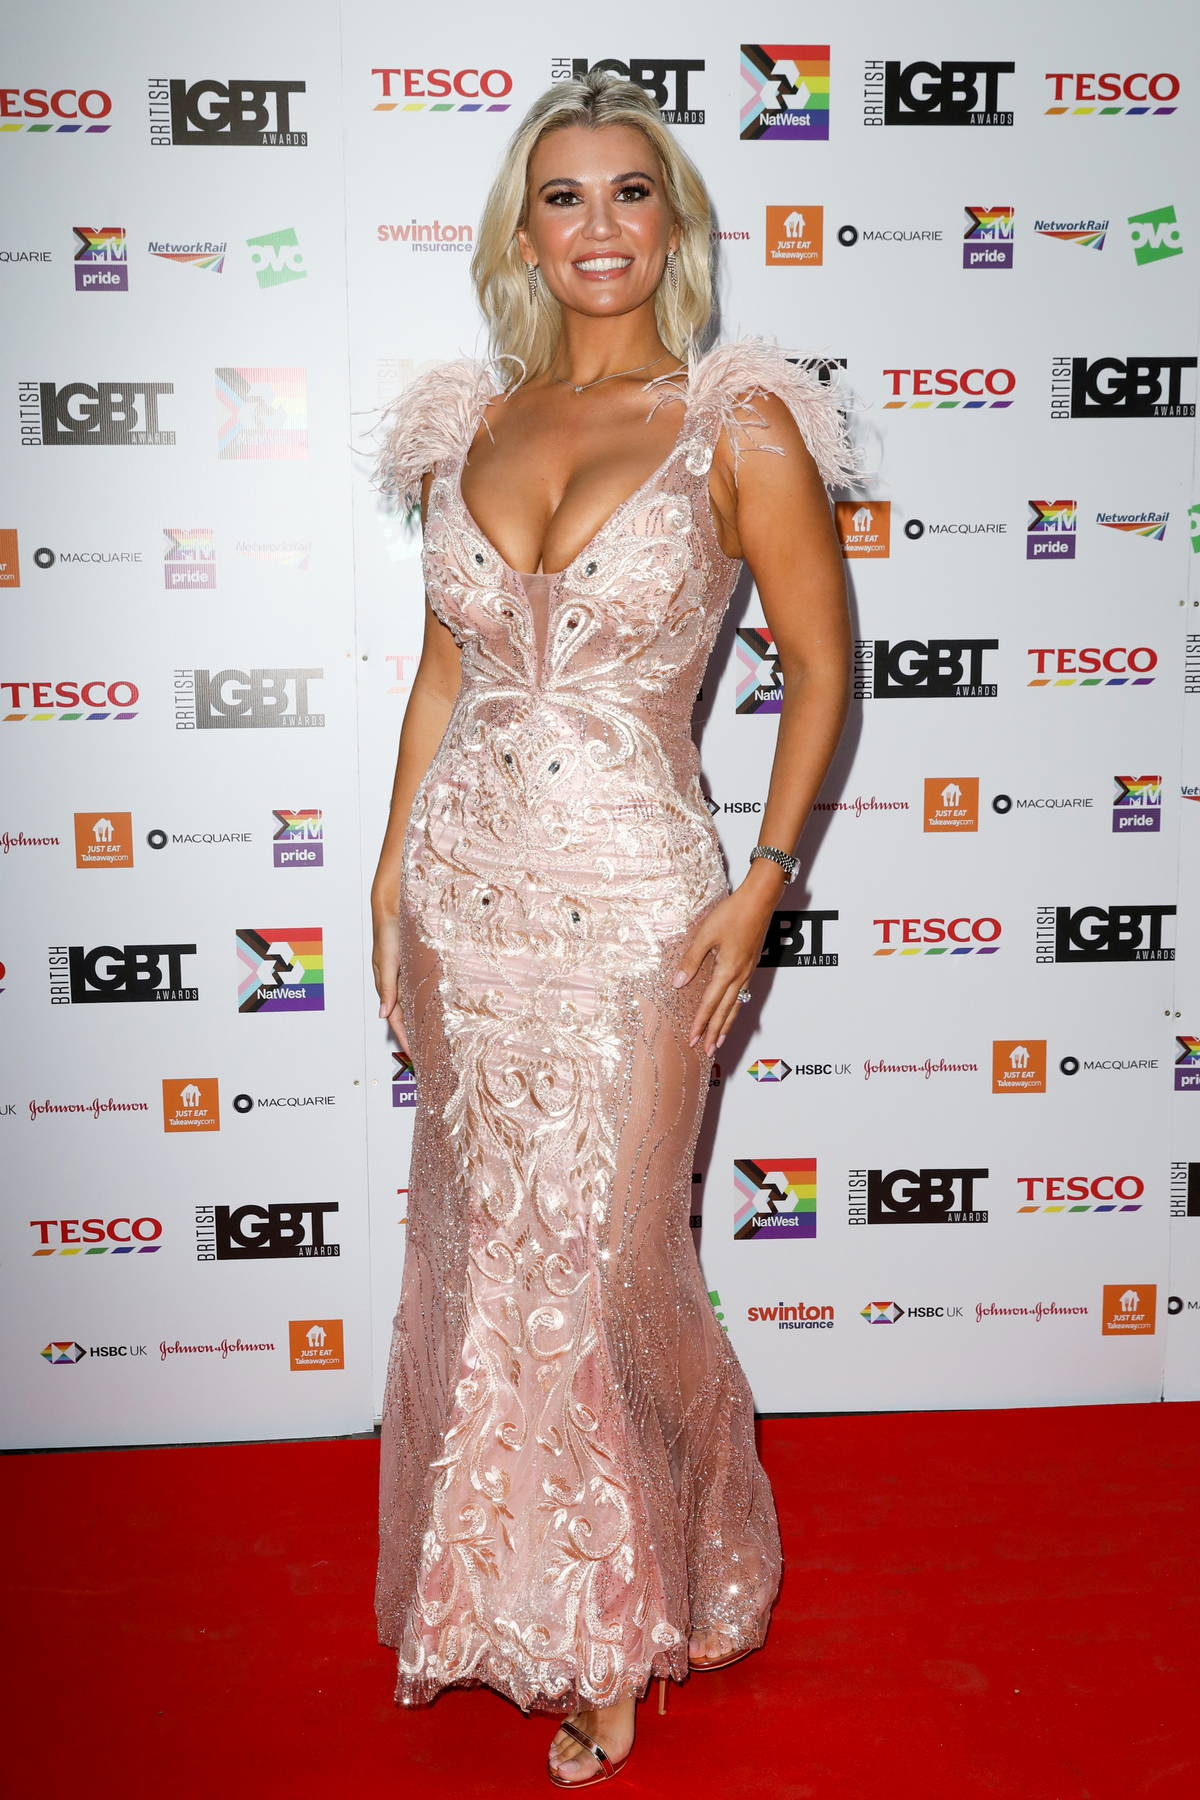 Christine McGuinness attends the British LGBT Awards 2021 at The Brewery in London, UK